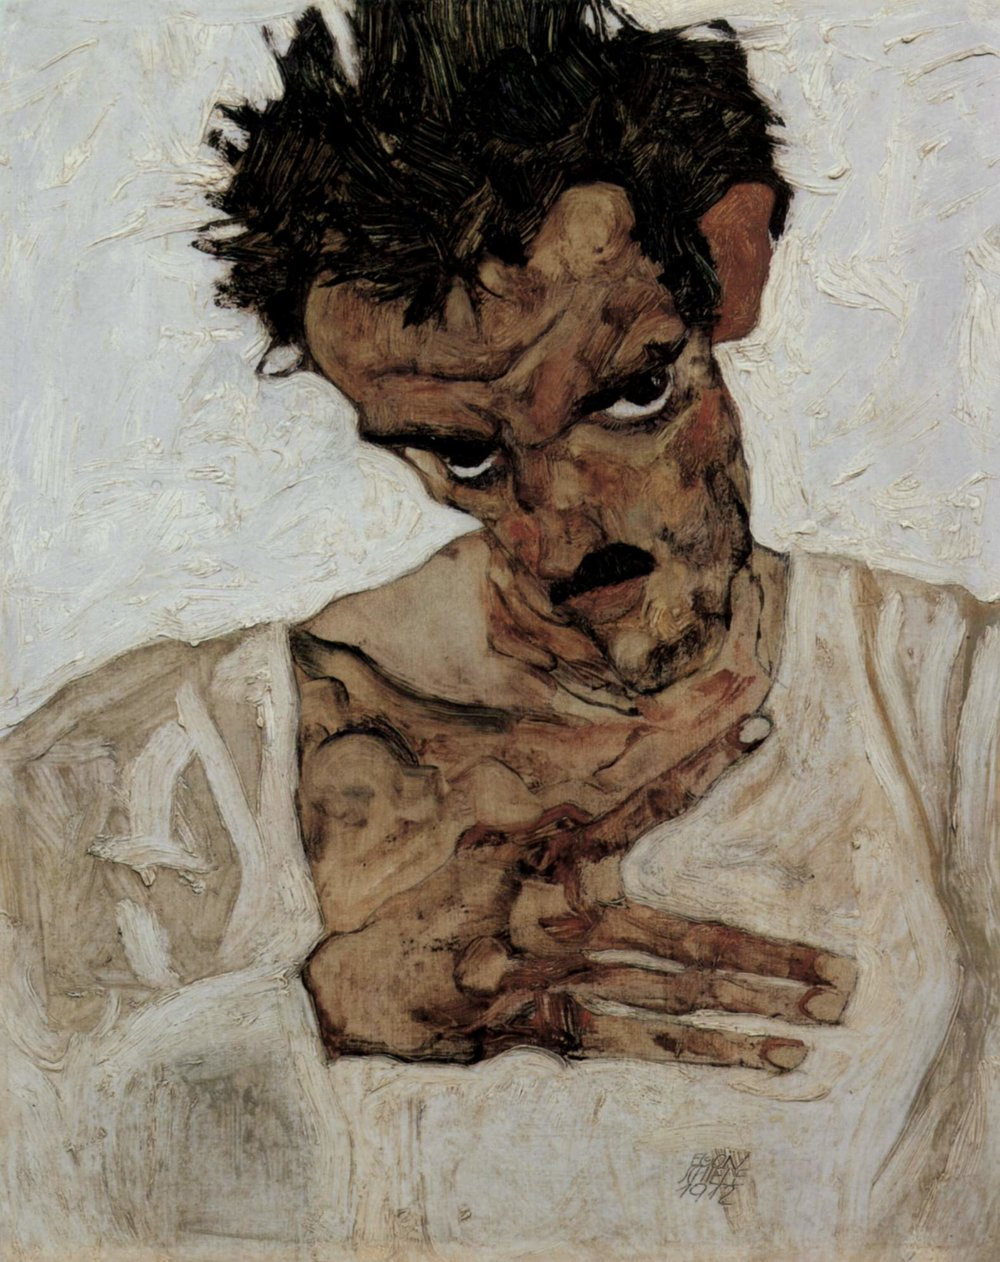 Self-Portrait, Egon Schiele, 1912 (Image courtesy of Leopold Museum)